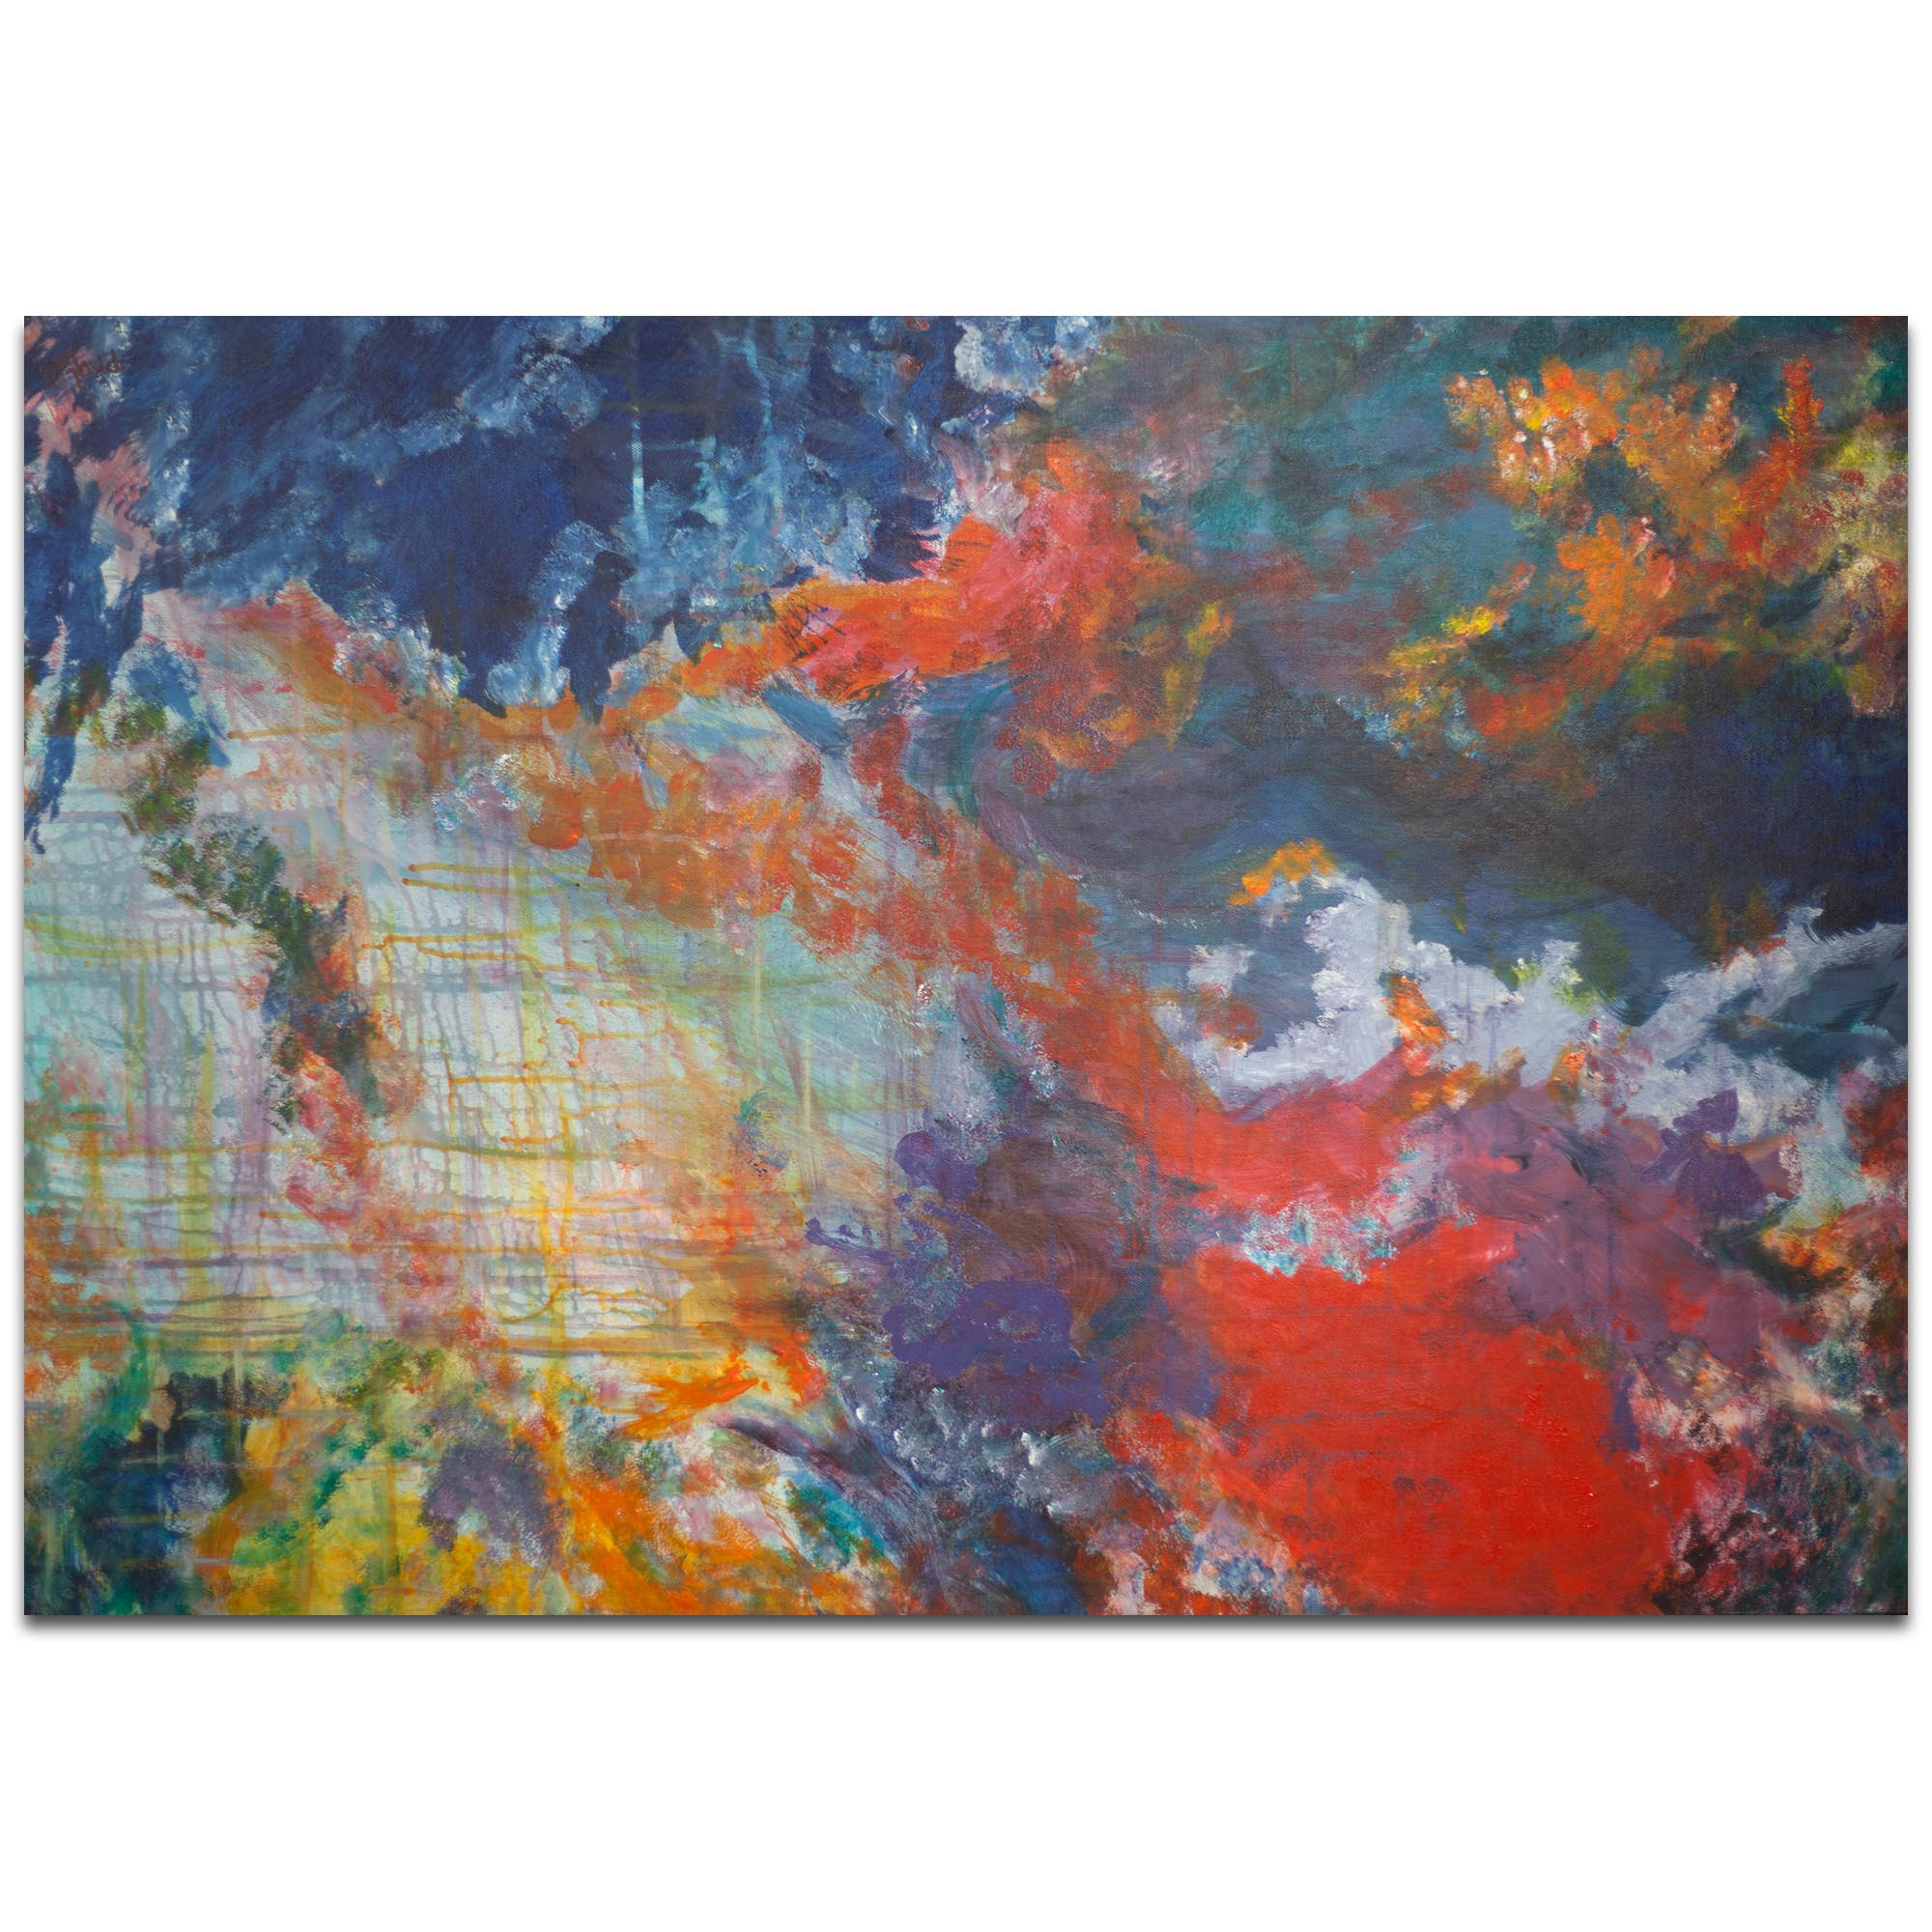 Abstract Wall Art 'Clouds of Color' - Urban Decor on Metal or Plexiglass